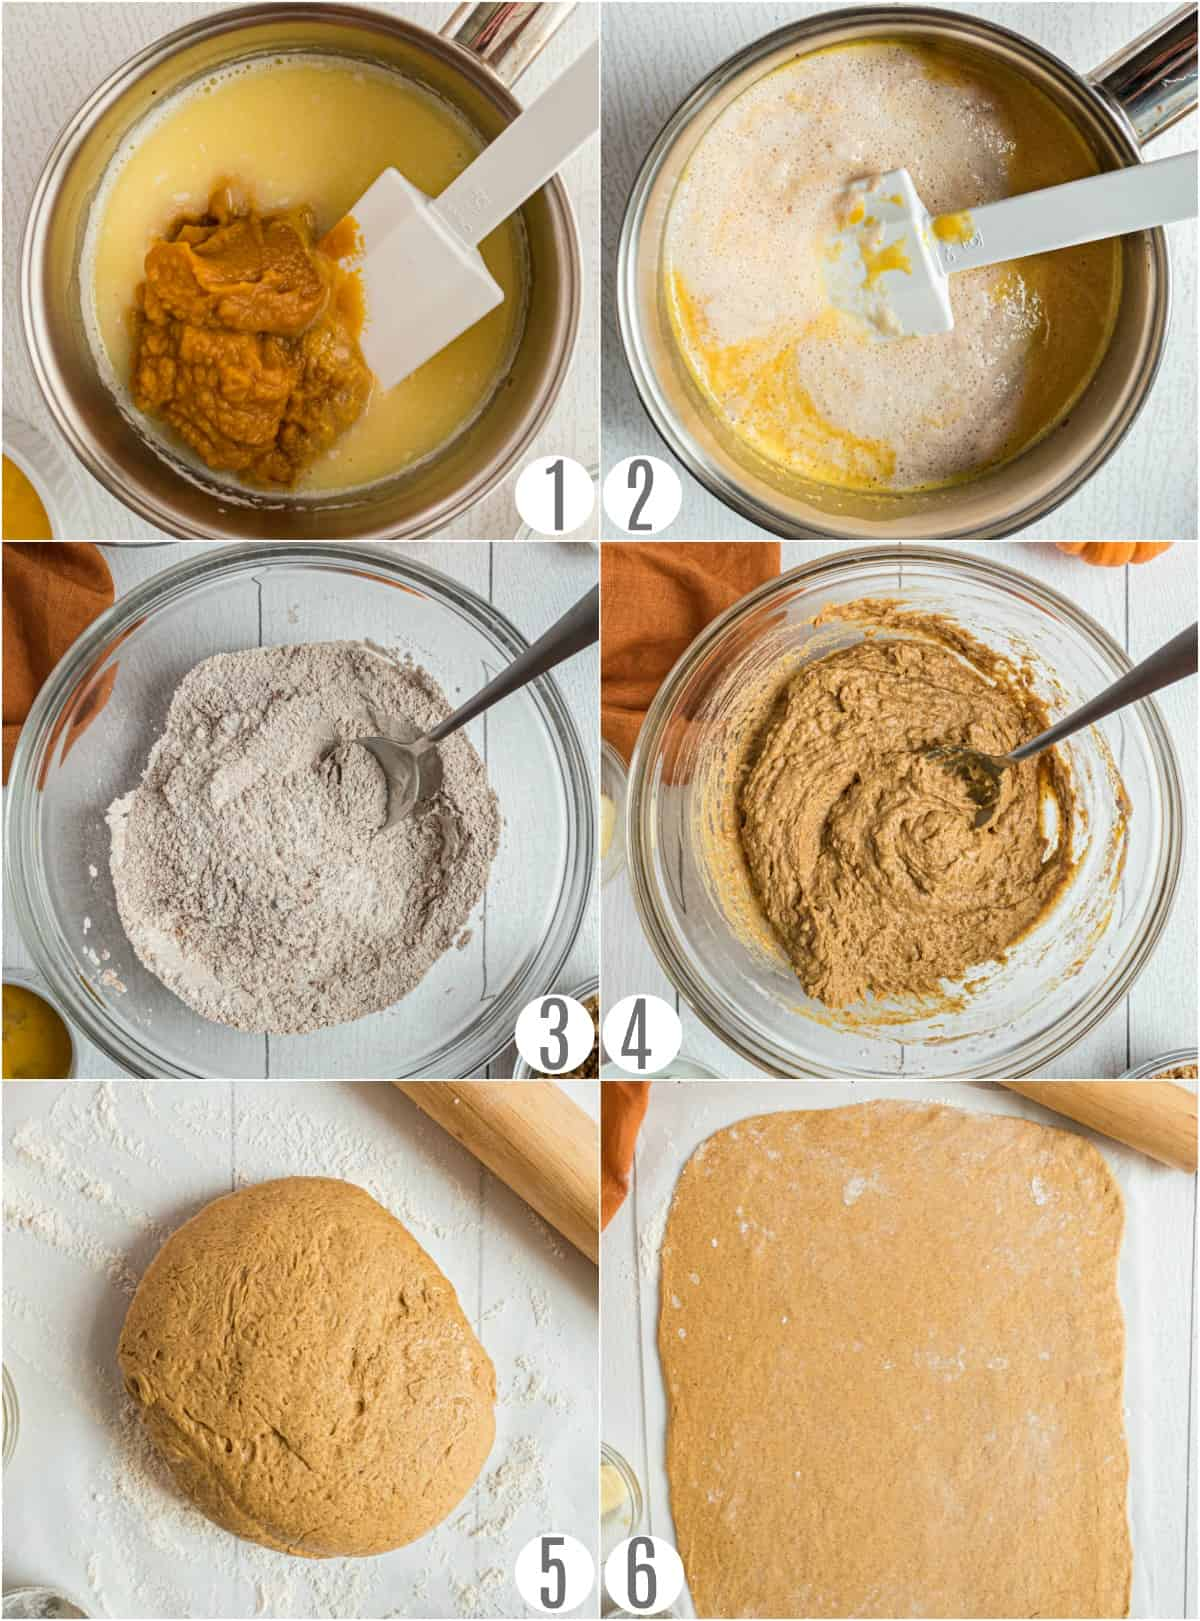 Step by step photos showing how to make pumpkin cinnamon roll dough.